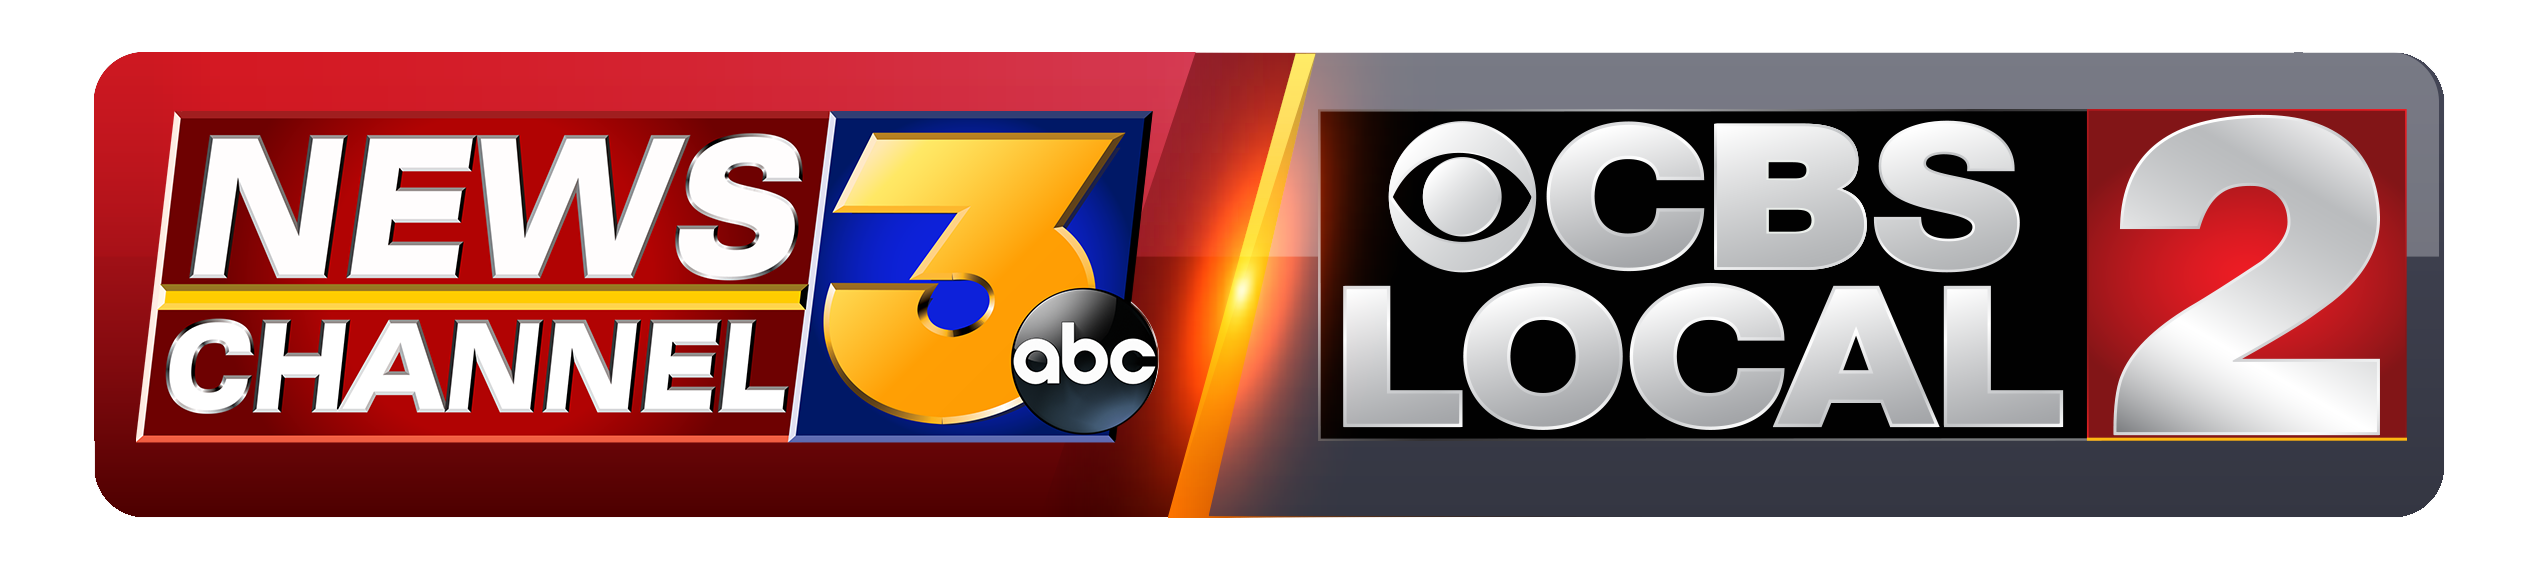 News clipart local news. Kesq channel cbs telemundo